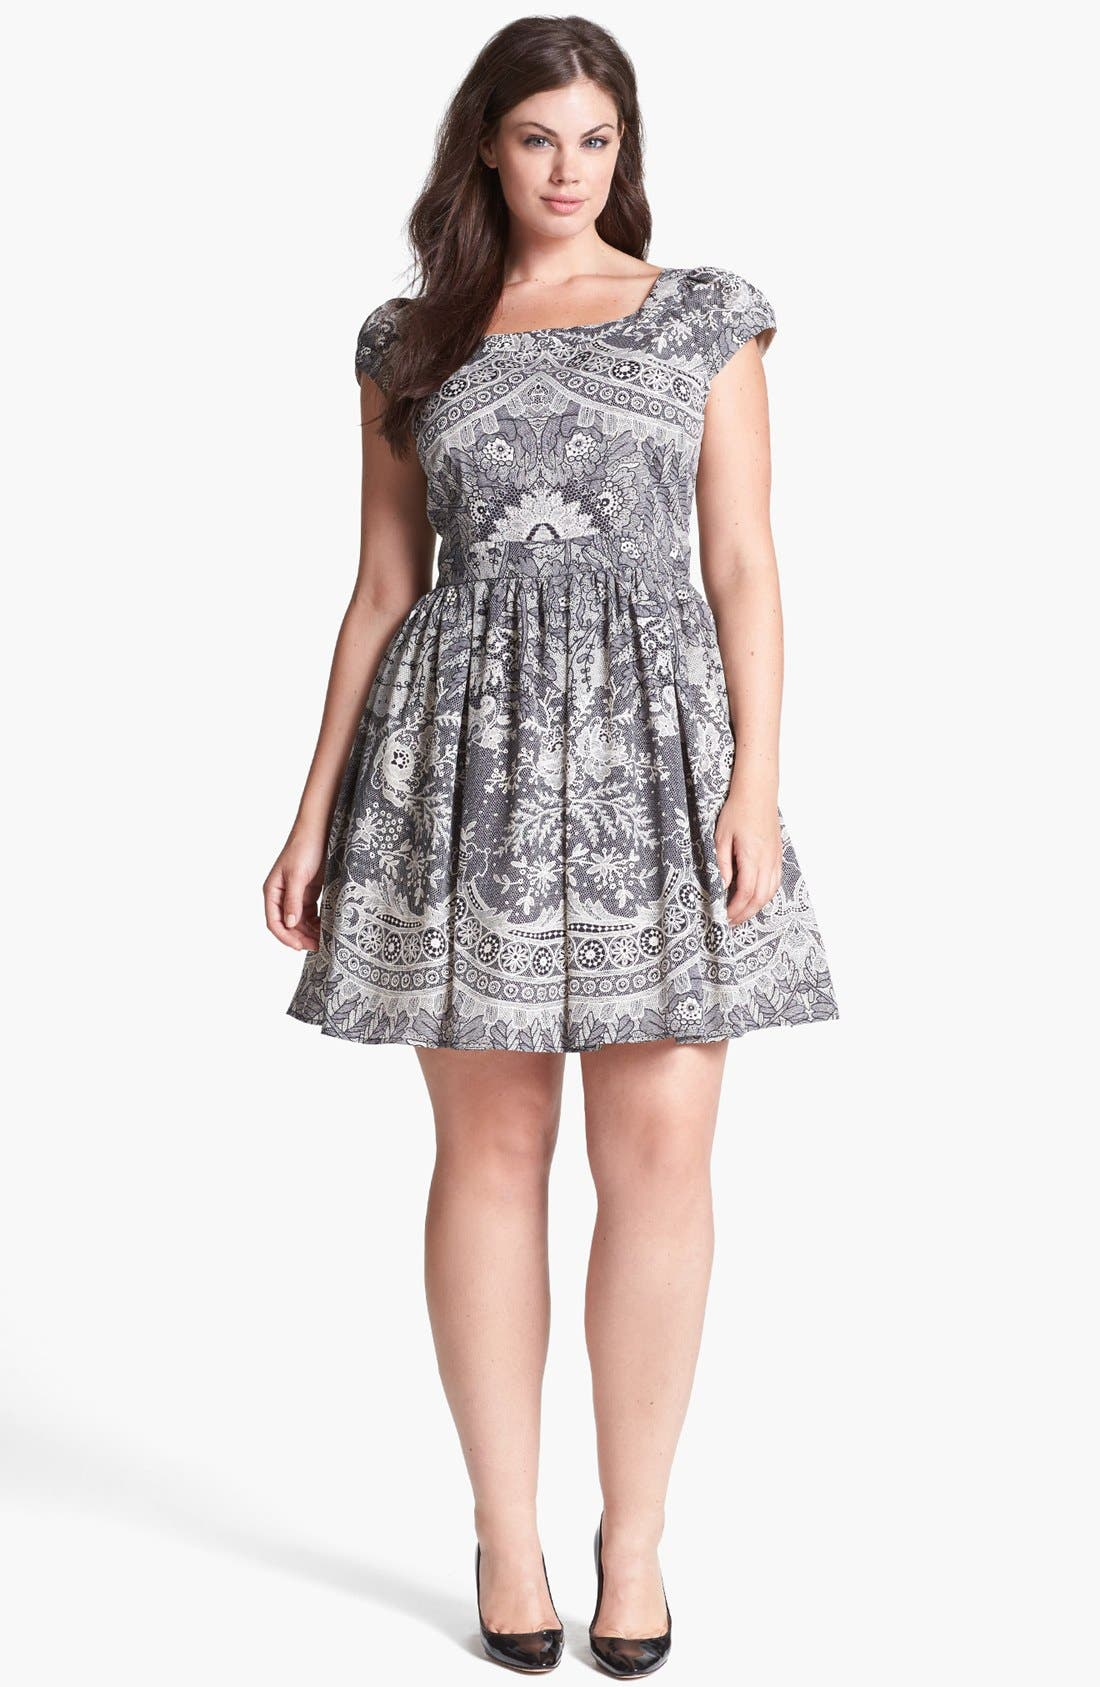 Alternate Image 1 Selected - ABS by Allen Schwartz Lace Print Fit & Flare Dress (Plus Size)